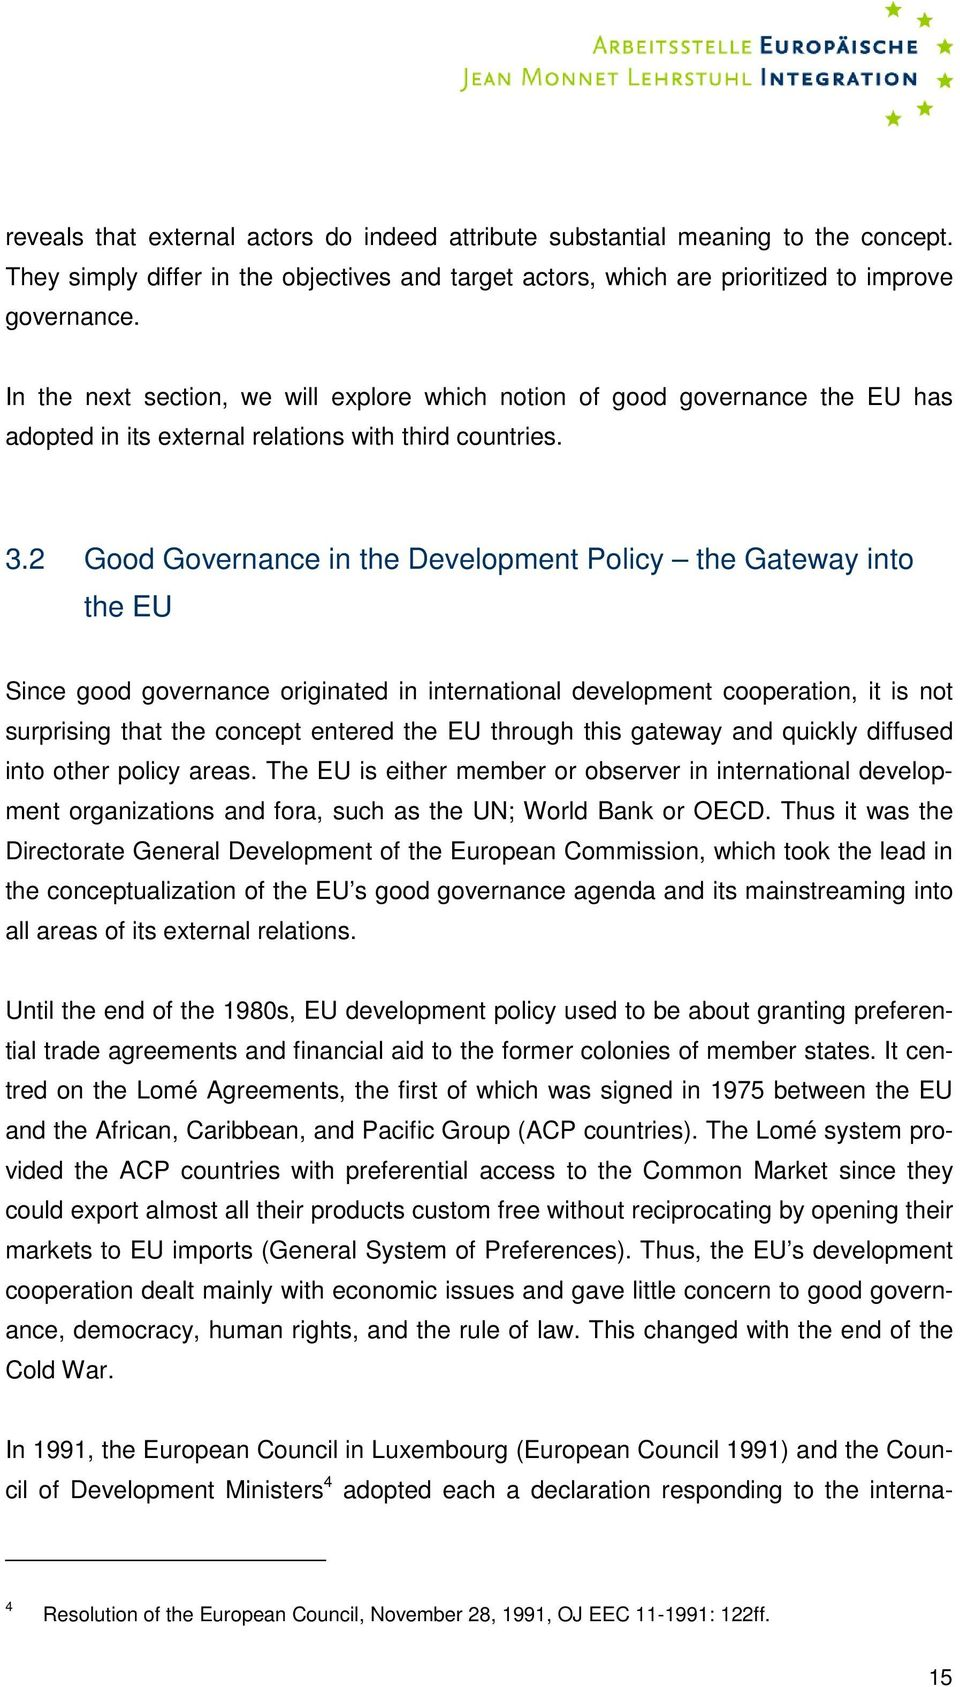 2 Good Governance in the Development Policy the Gateway into the EU Since good governance originated in international development cooperation, it is not surprising that the concept entered the EU